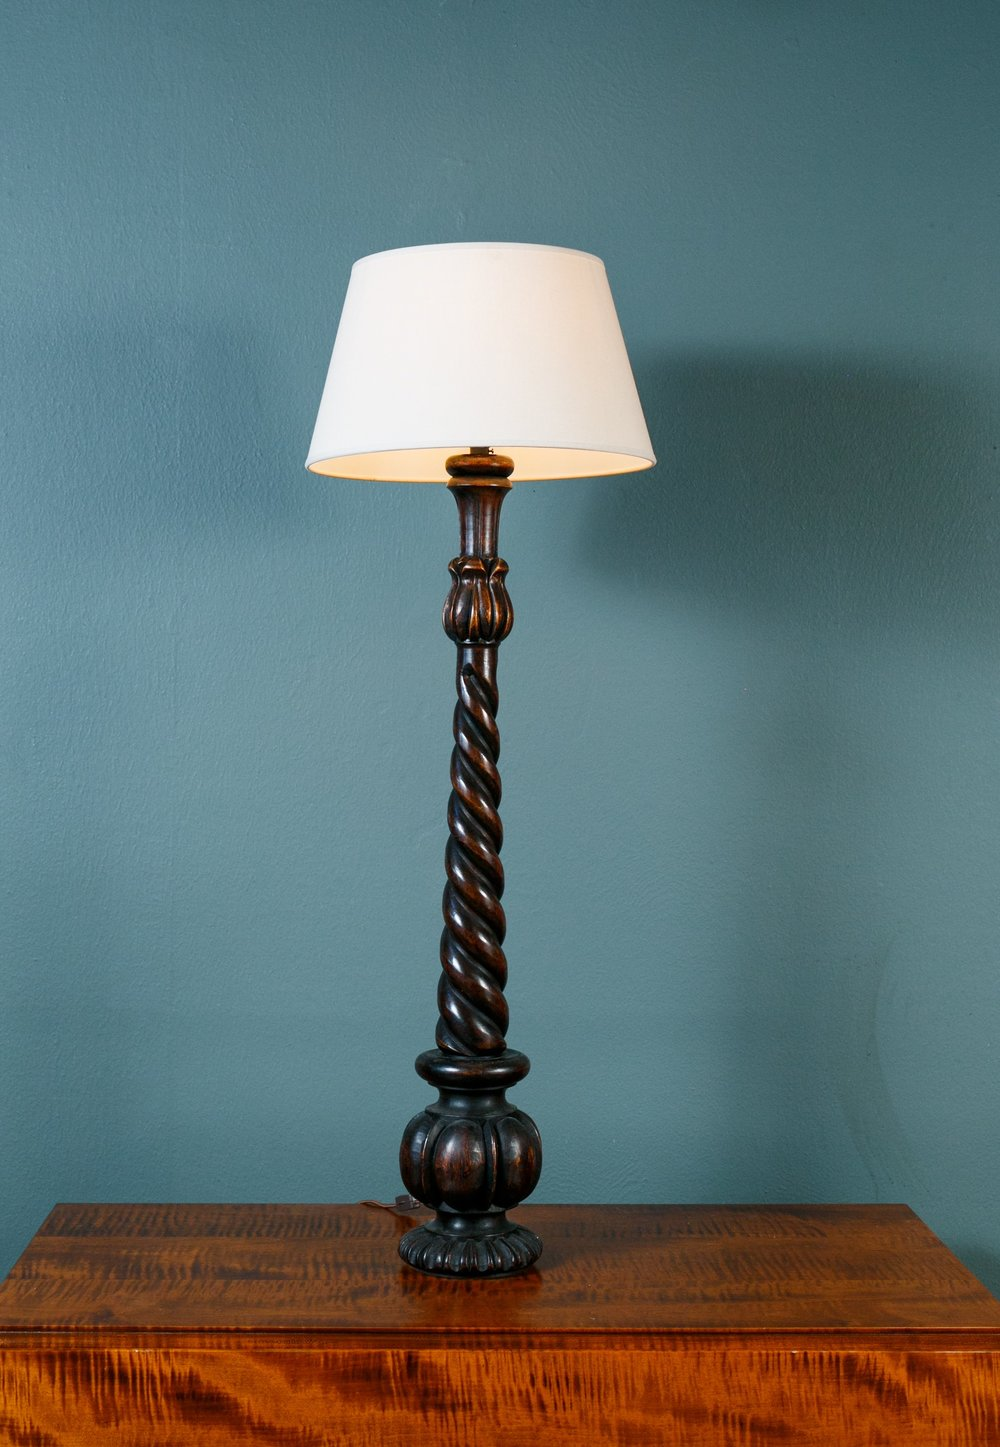 Hand-Carved Barley Twist Lamp with Linen Shade